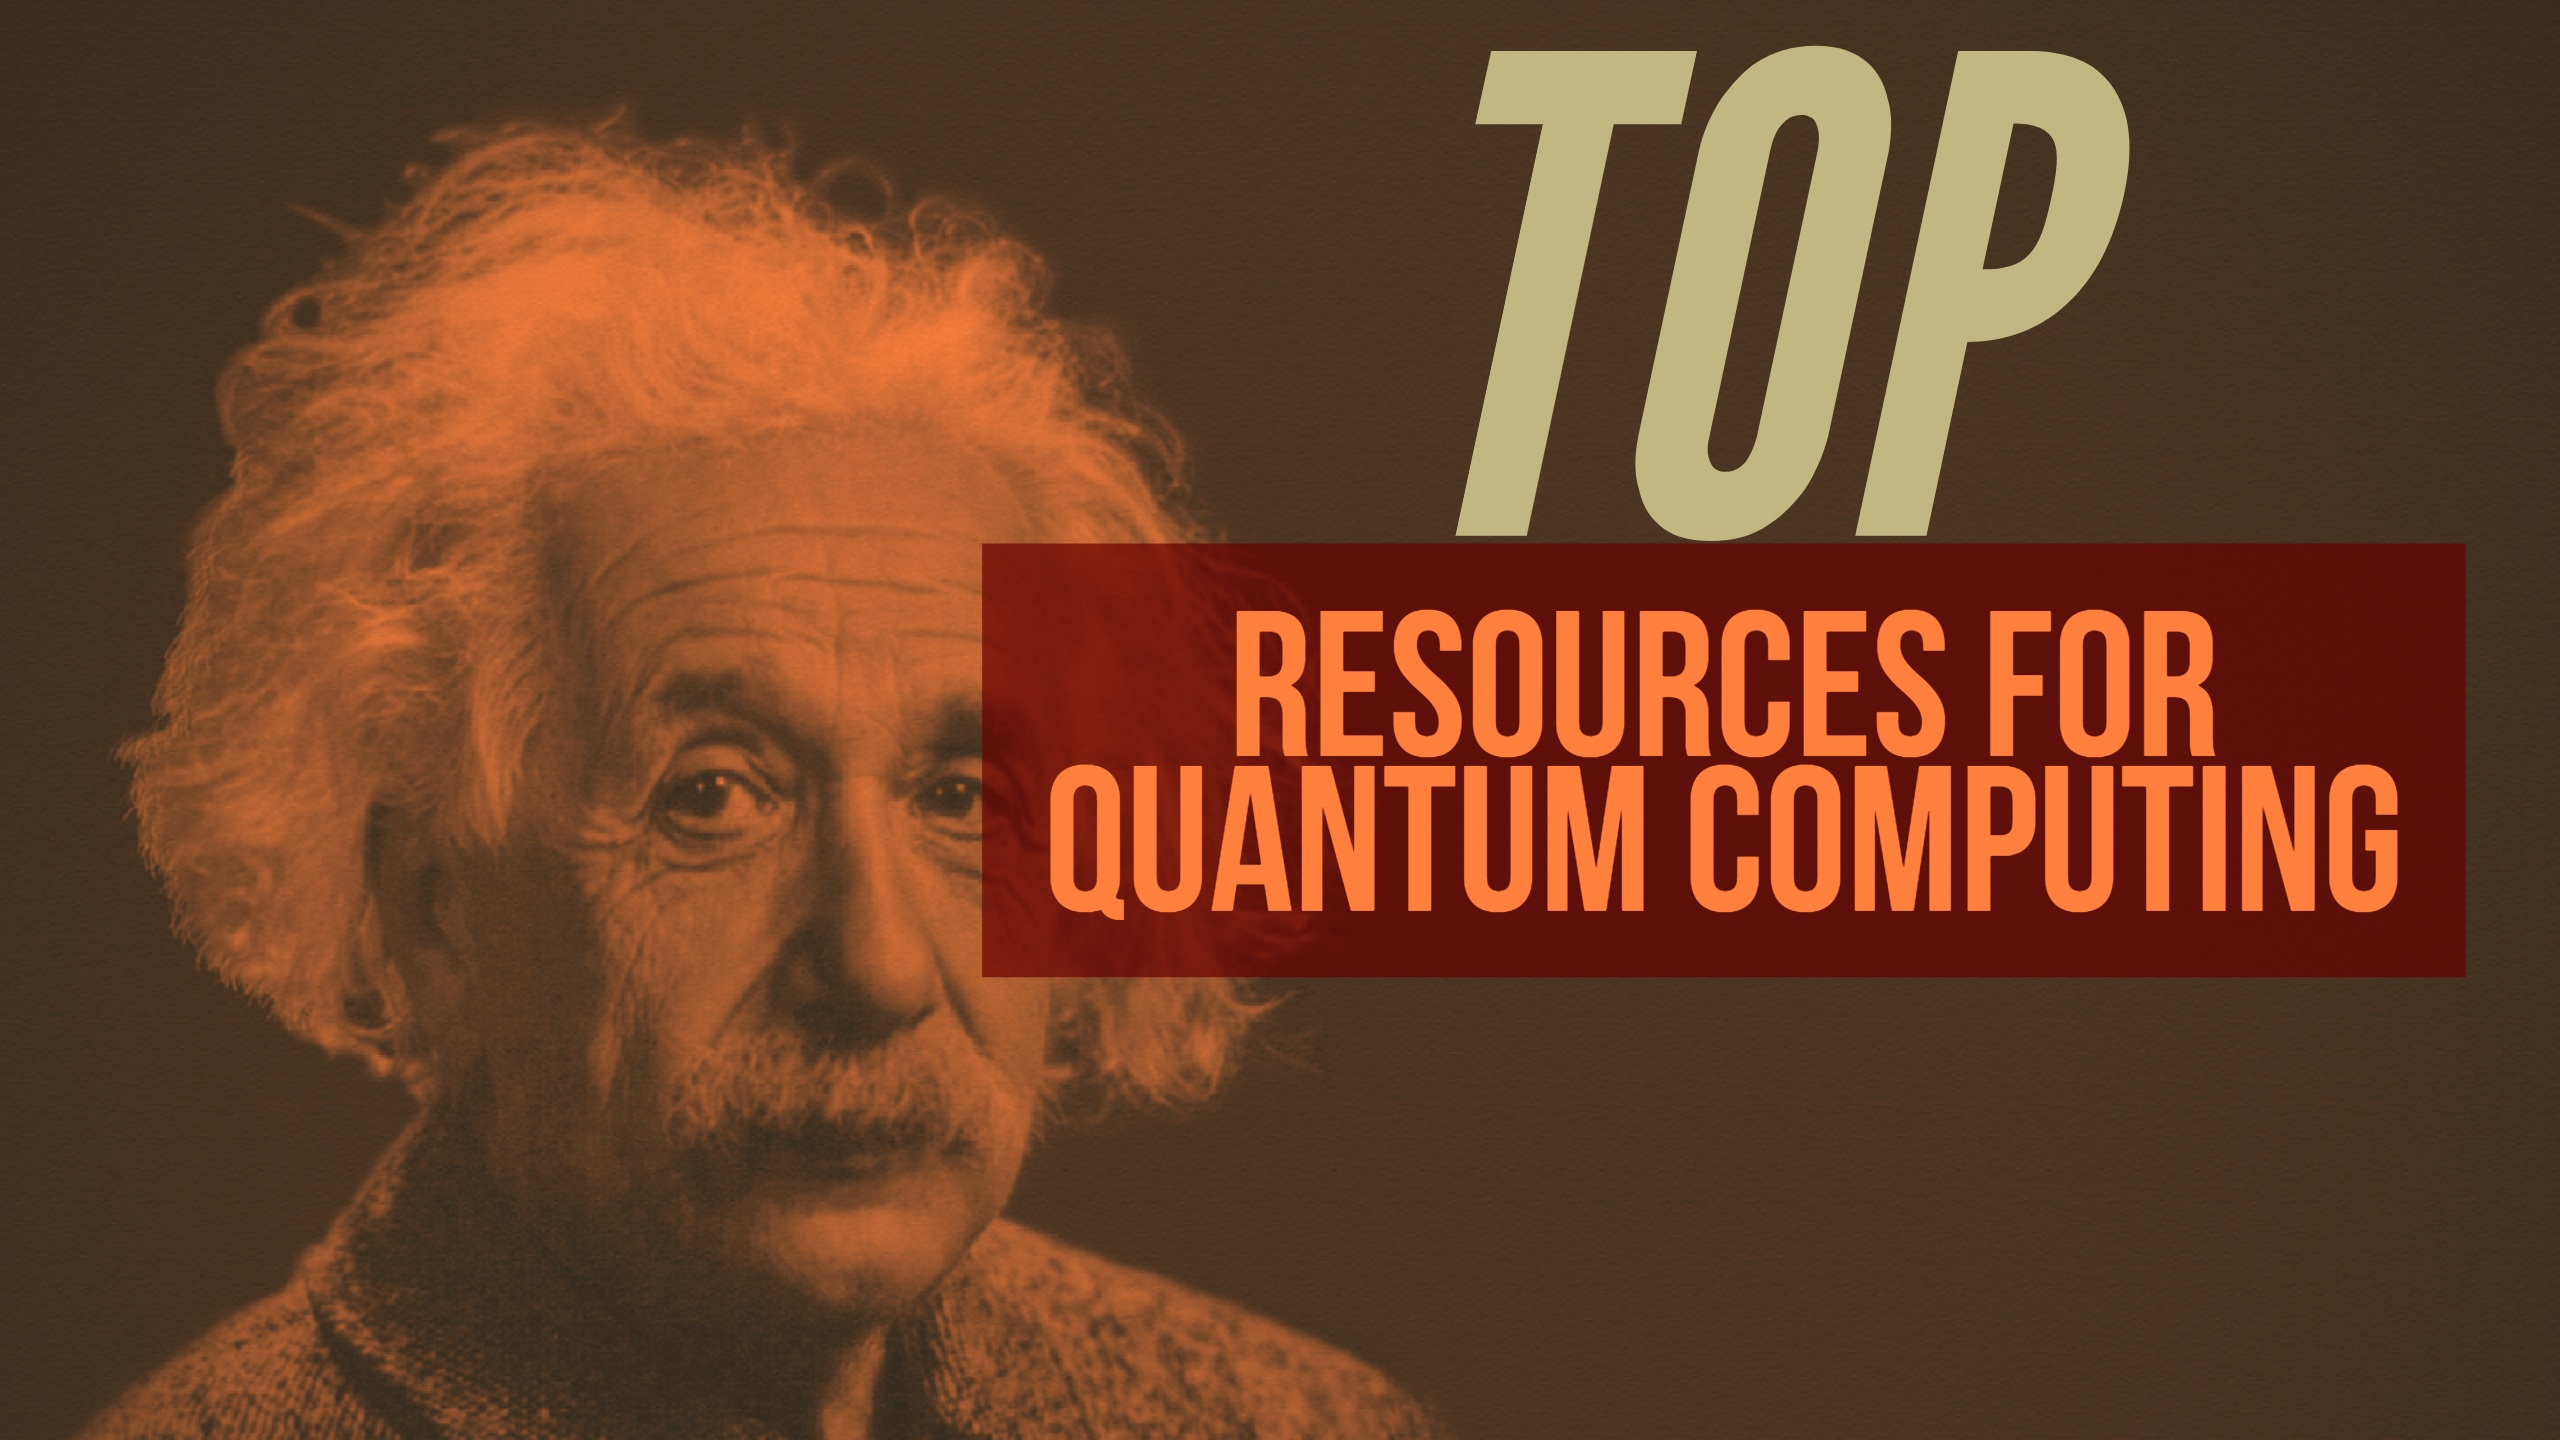 Free Online Quantum Computing Microsoft Resources for Getting Started